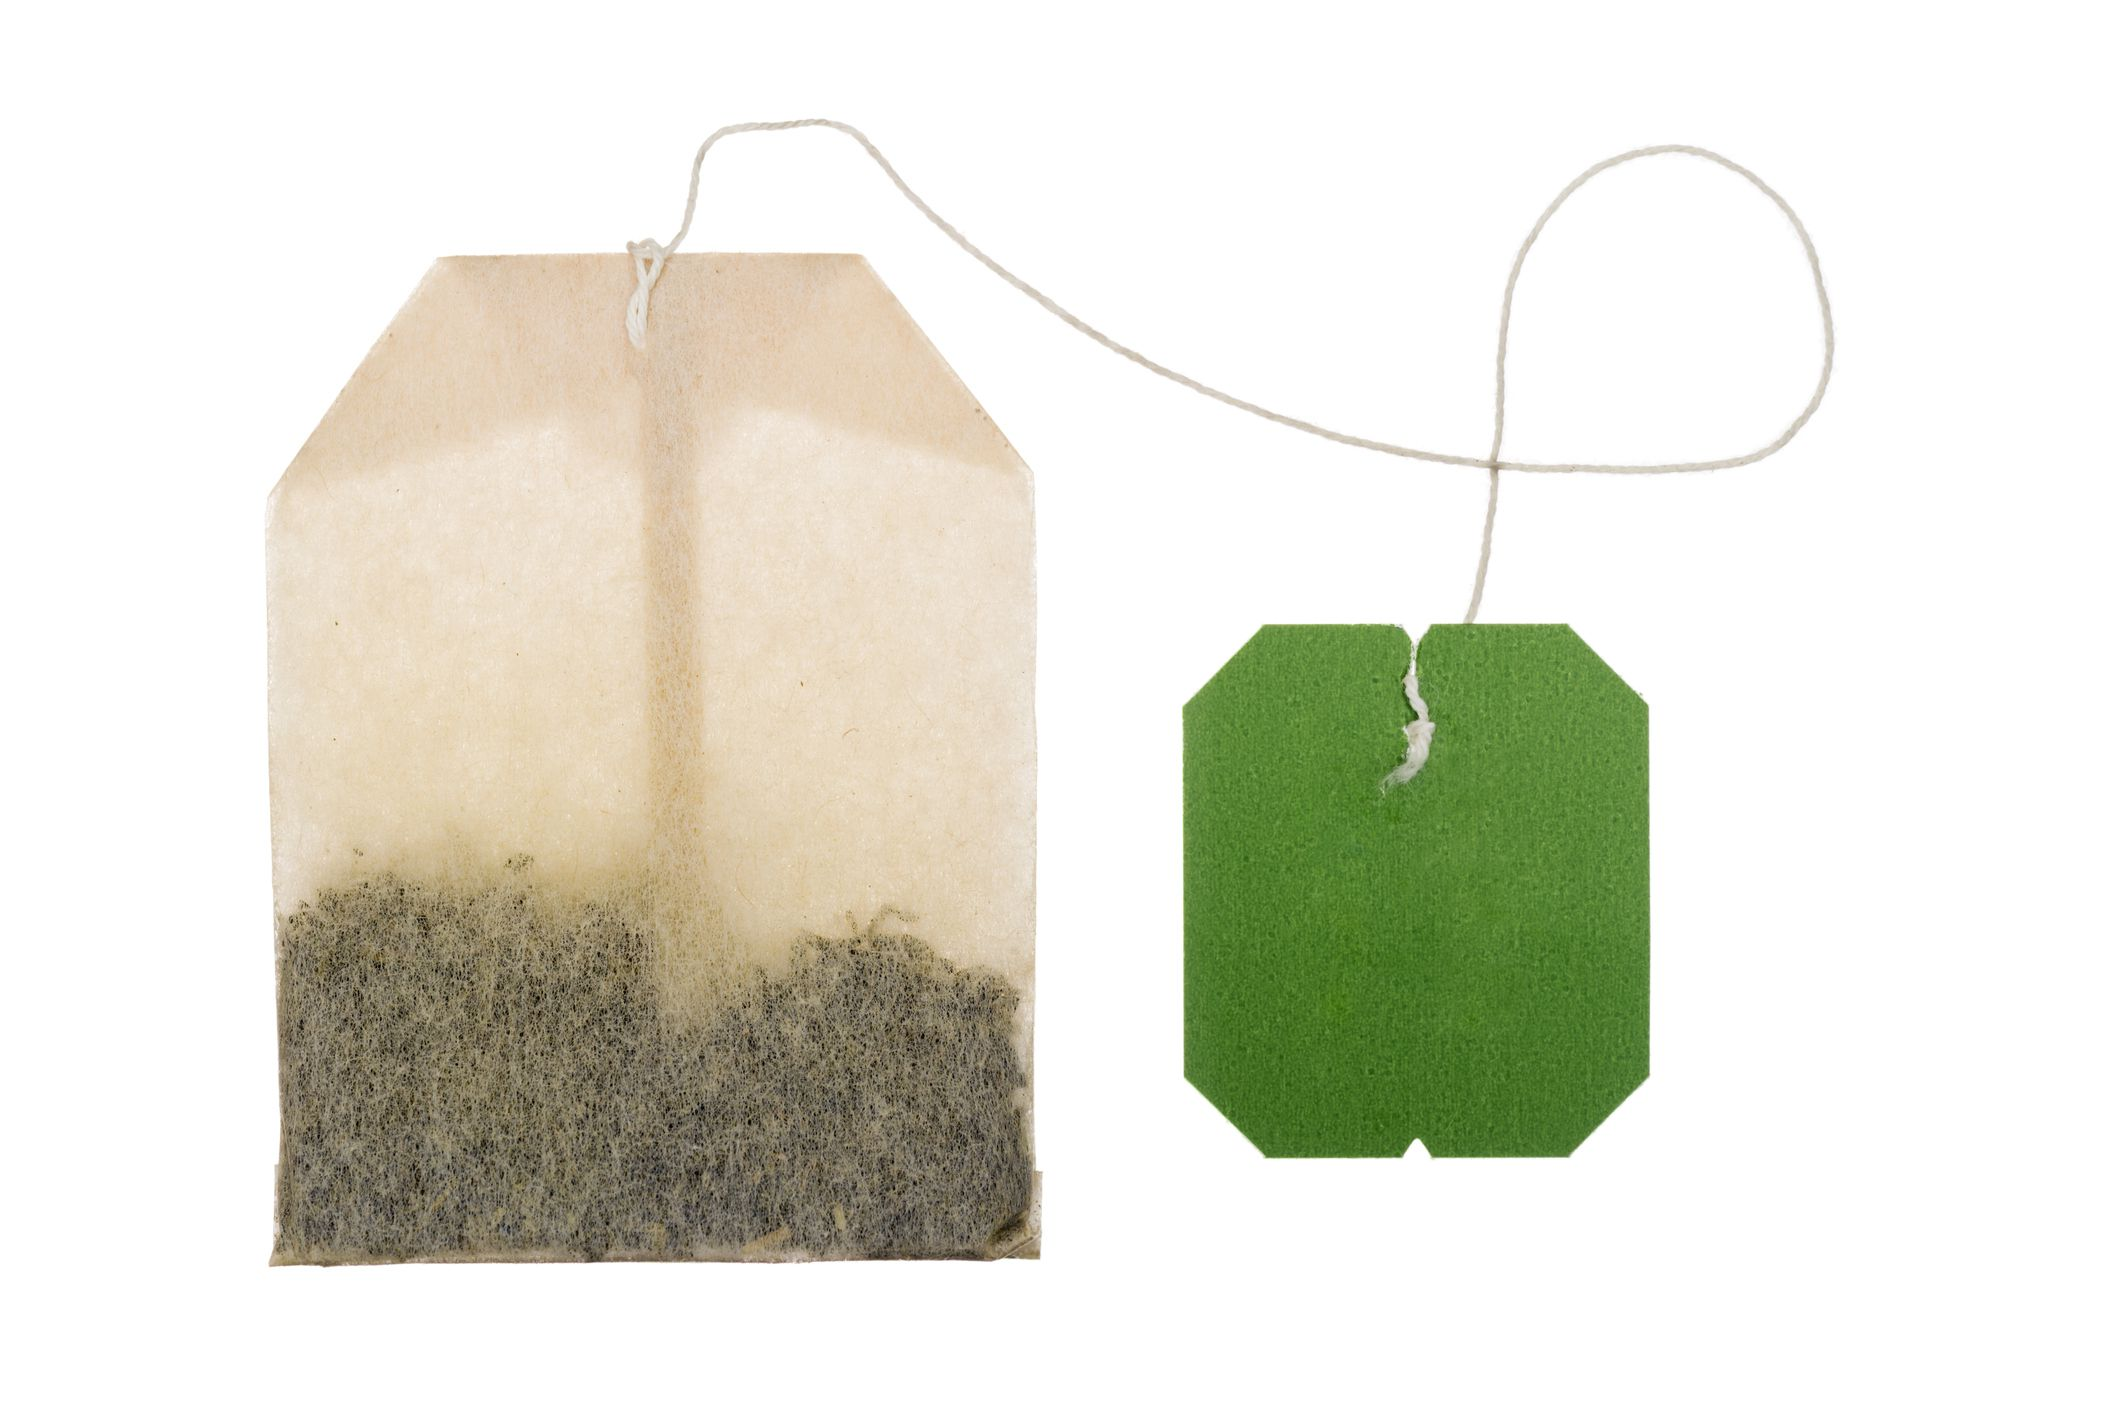 Tea Bags: History, Types, Uses, and More